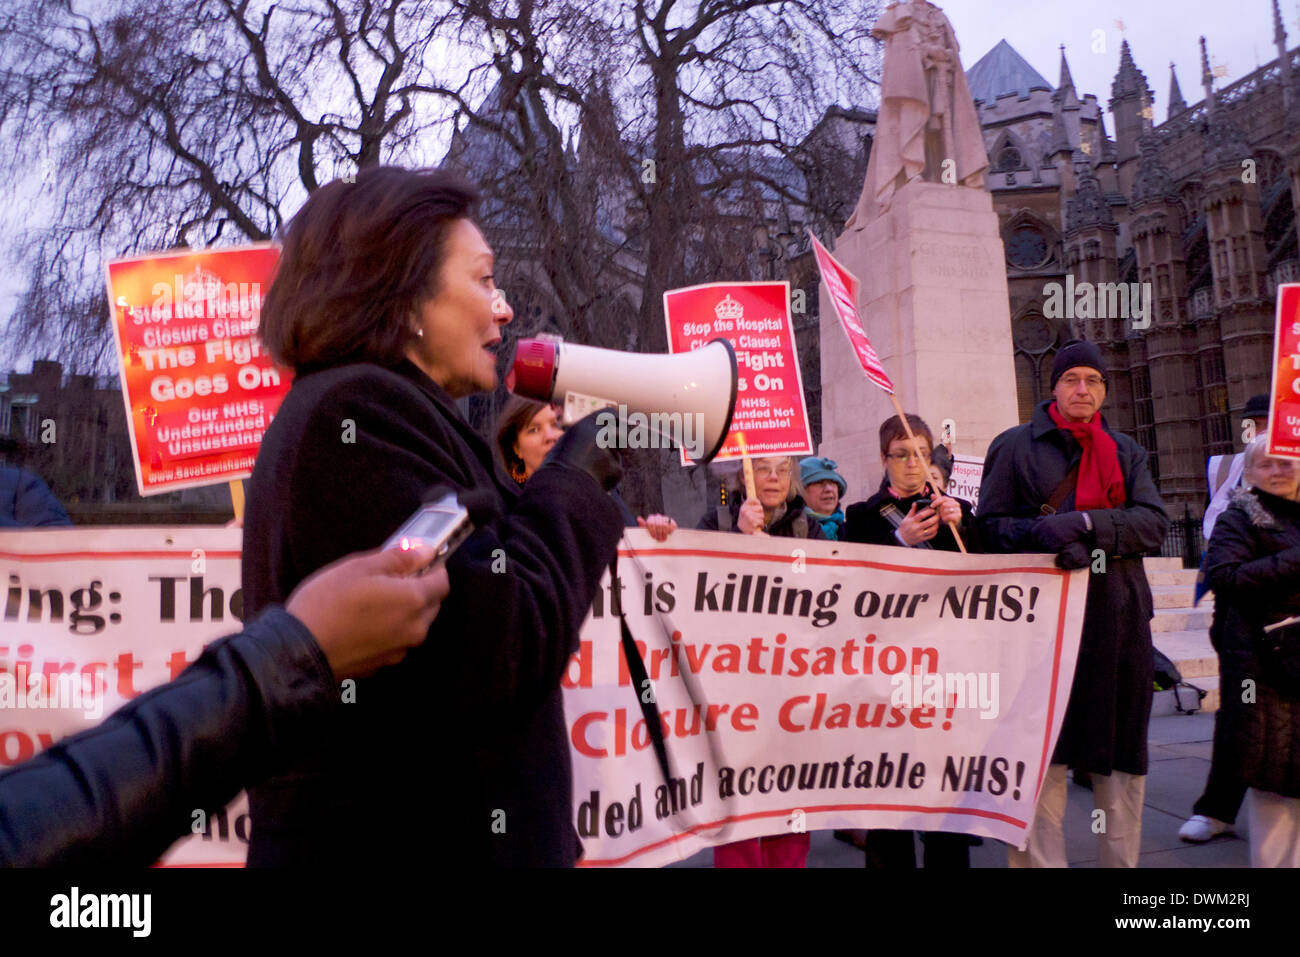 Westminster, London UK. Monday 10th March 2014.  Joan Ruddock Labour MP for Lewisham Deptford addresses NHS Hospital Closure Clause 119 protesters the evening before MP's Vote.  Demonstrations continue today on 11th March on College Green opposite St. Stephen's Gate.  KATHY DEWITT/ALamy Live News - Stock Image